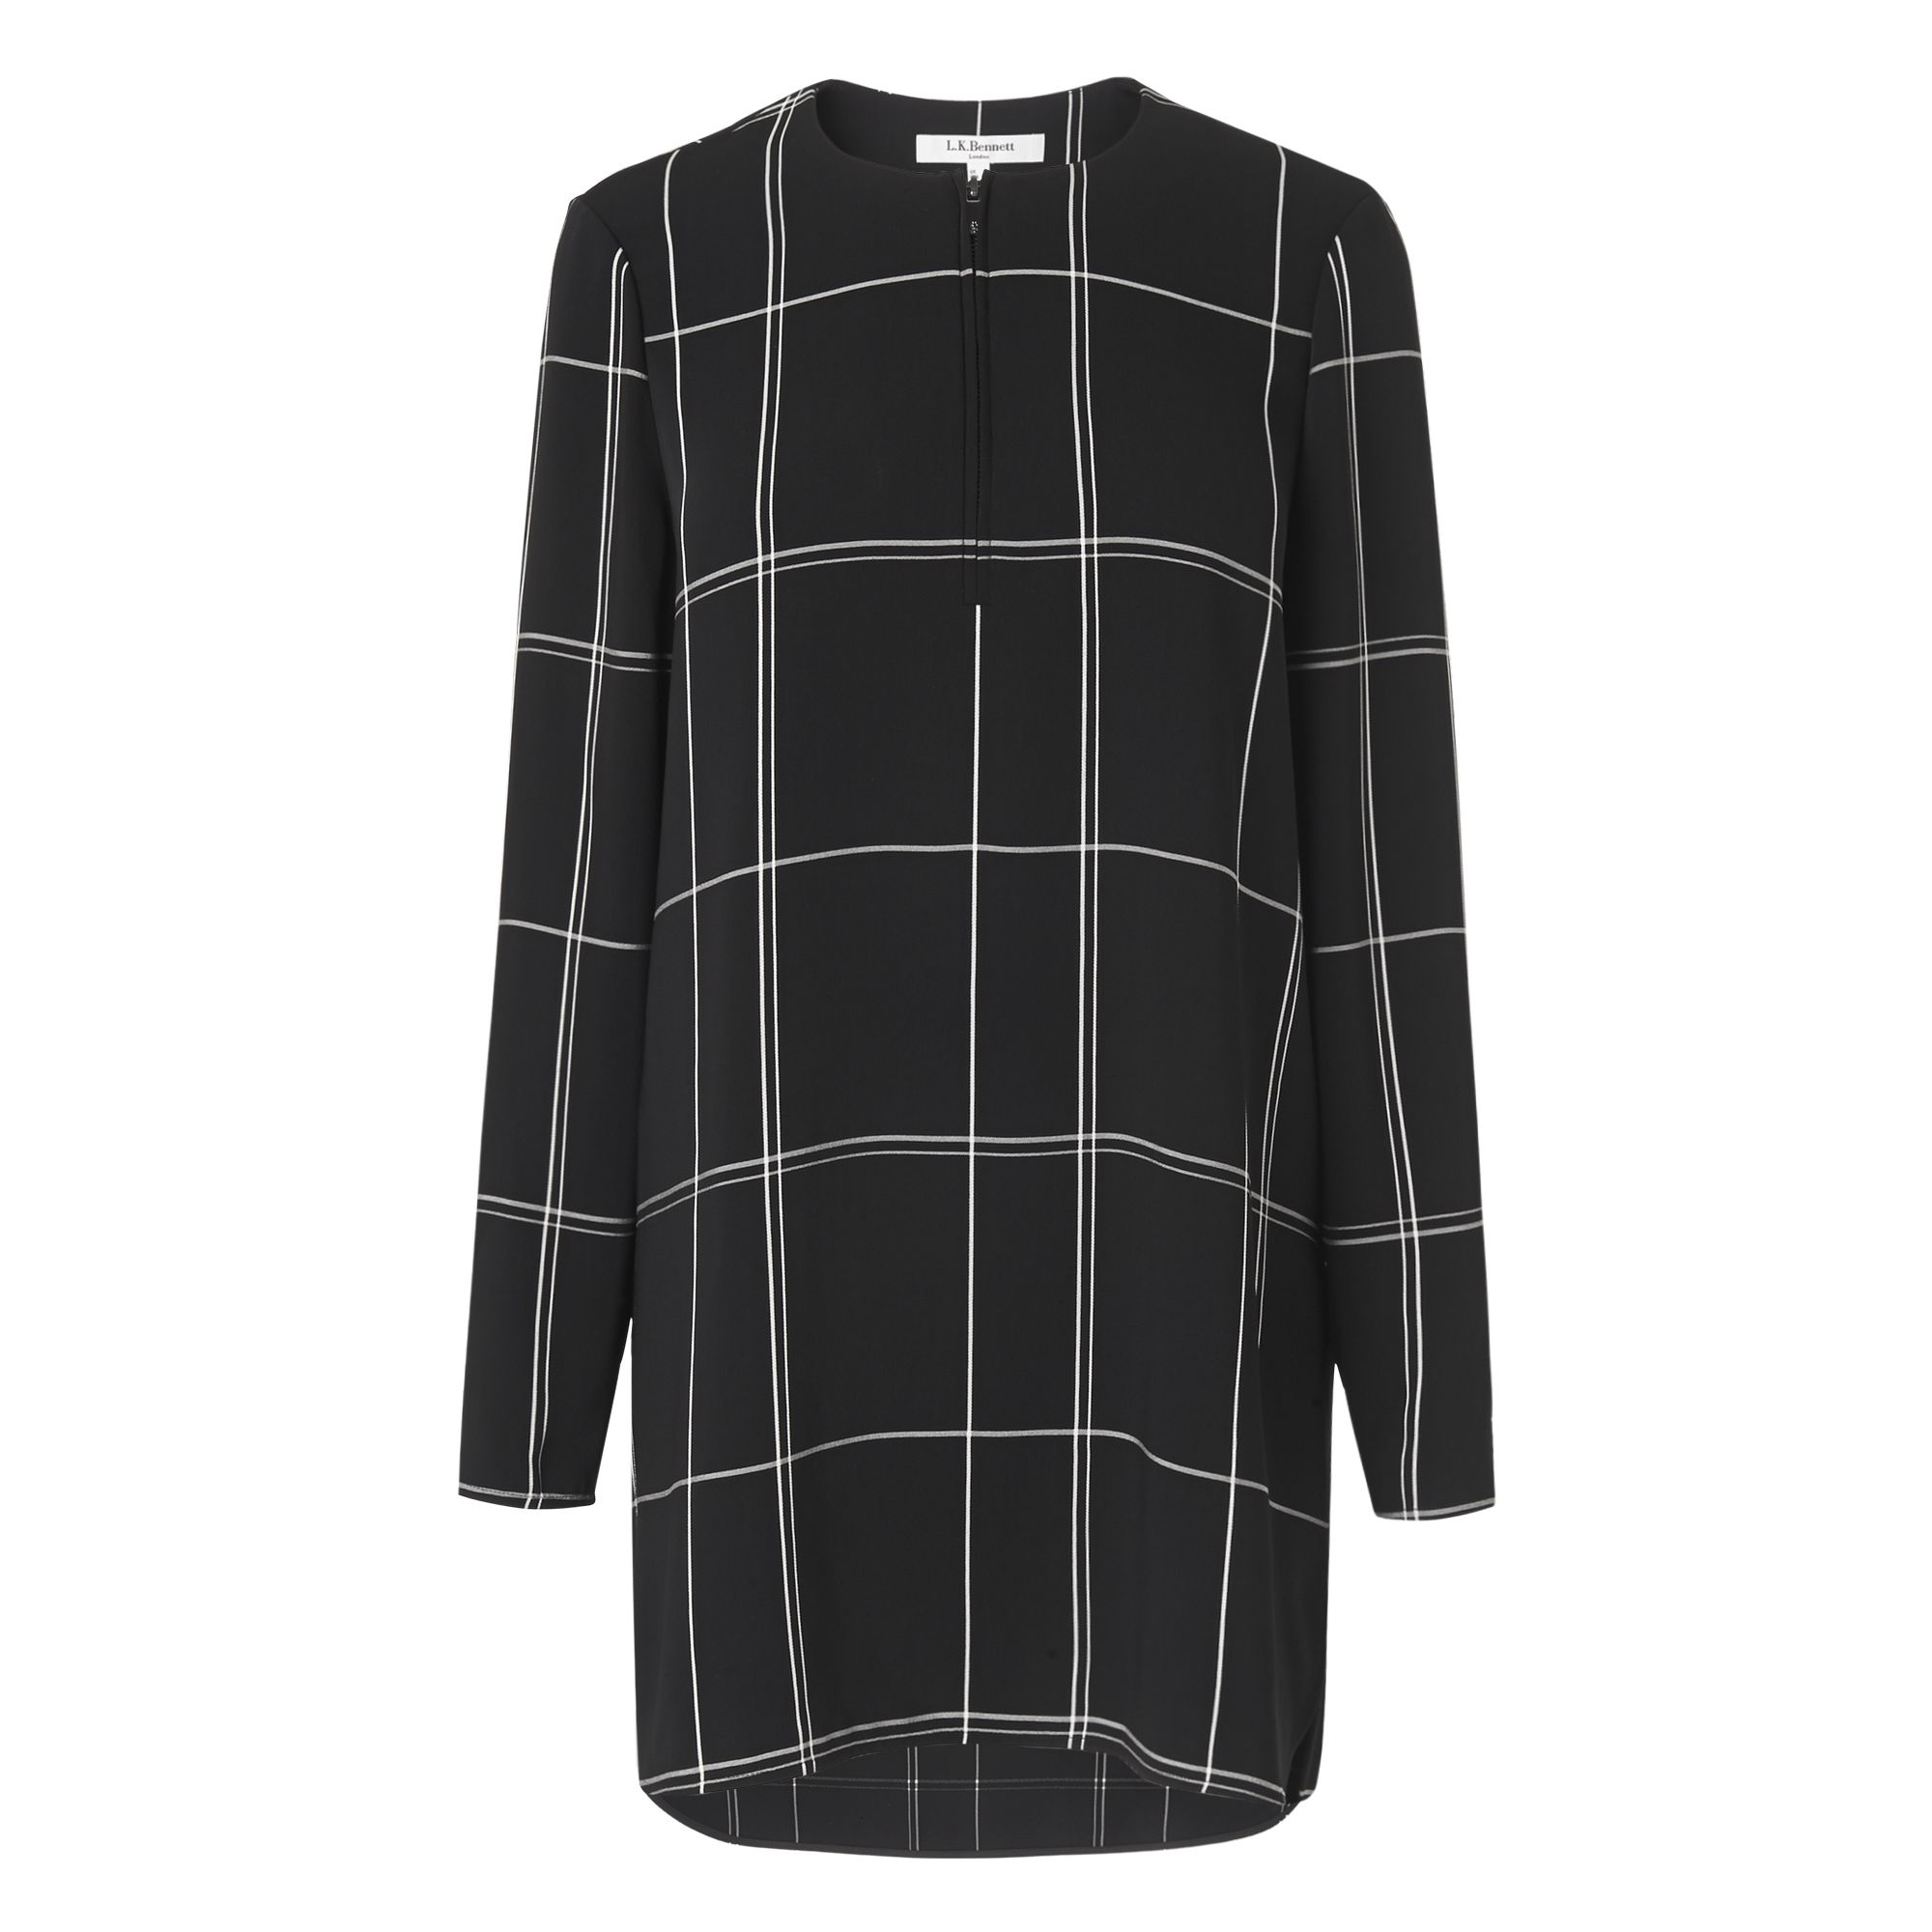 L.K. Bennett Dinah Black Check Tunic Top, Black